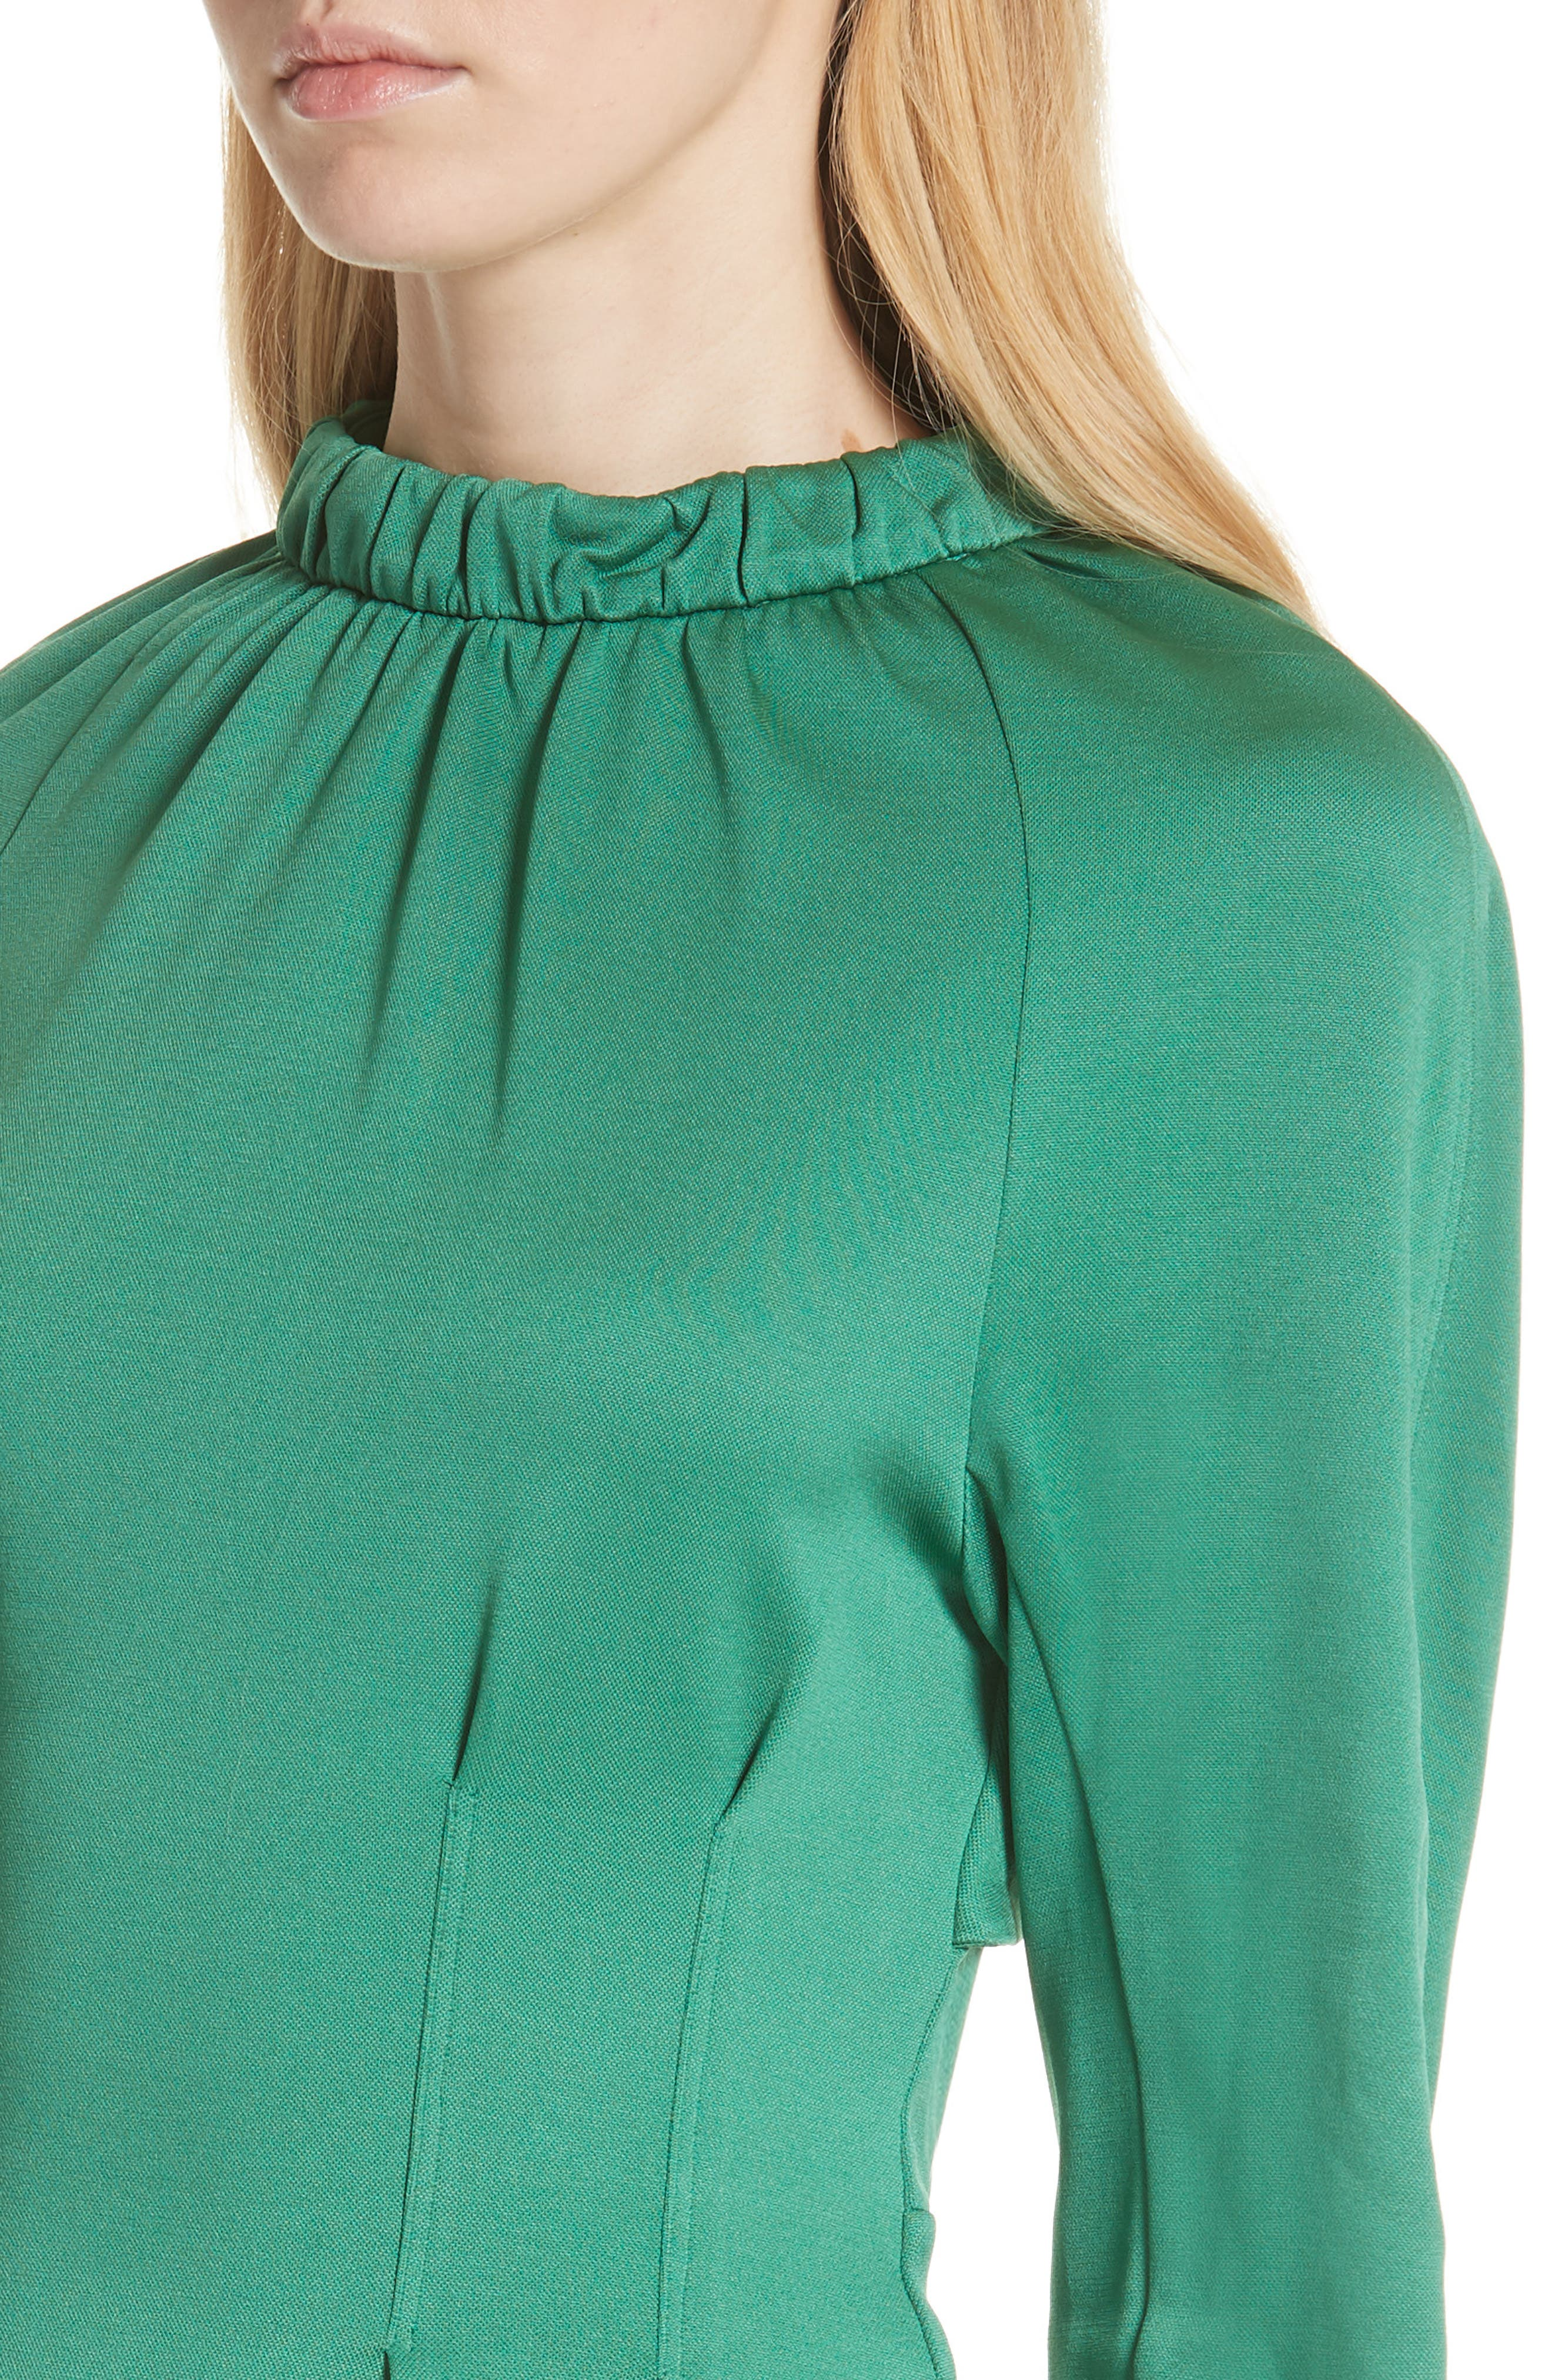 Astor Knit Sheath Dress,                             Alternate thumbnail 4, color,                             Green